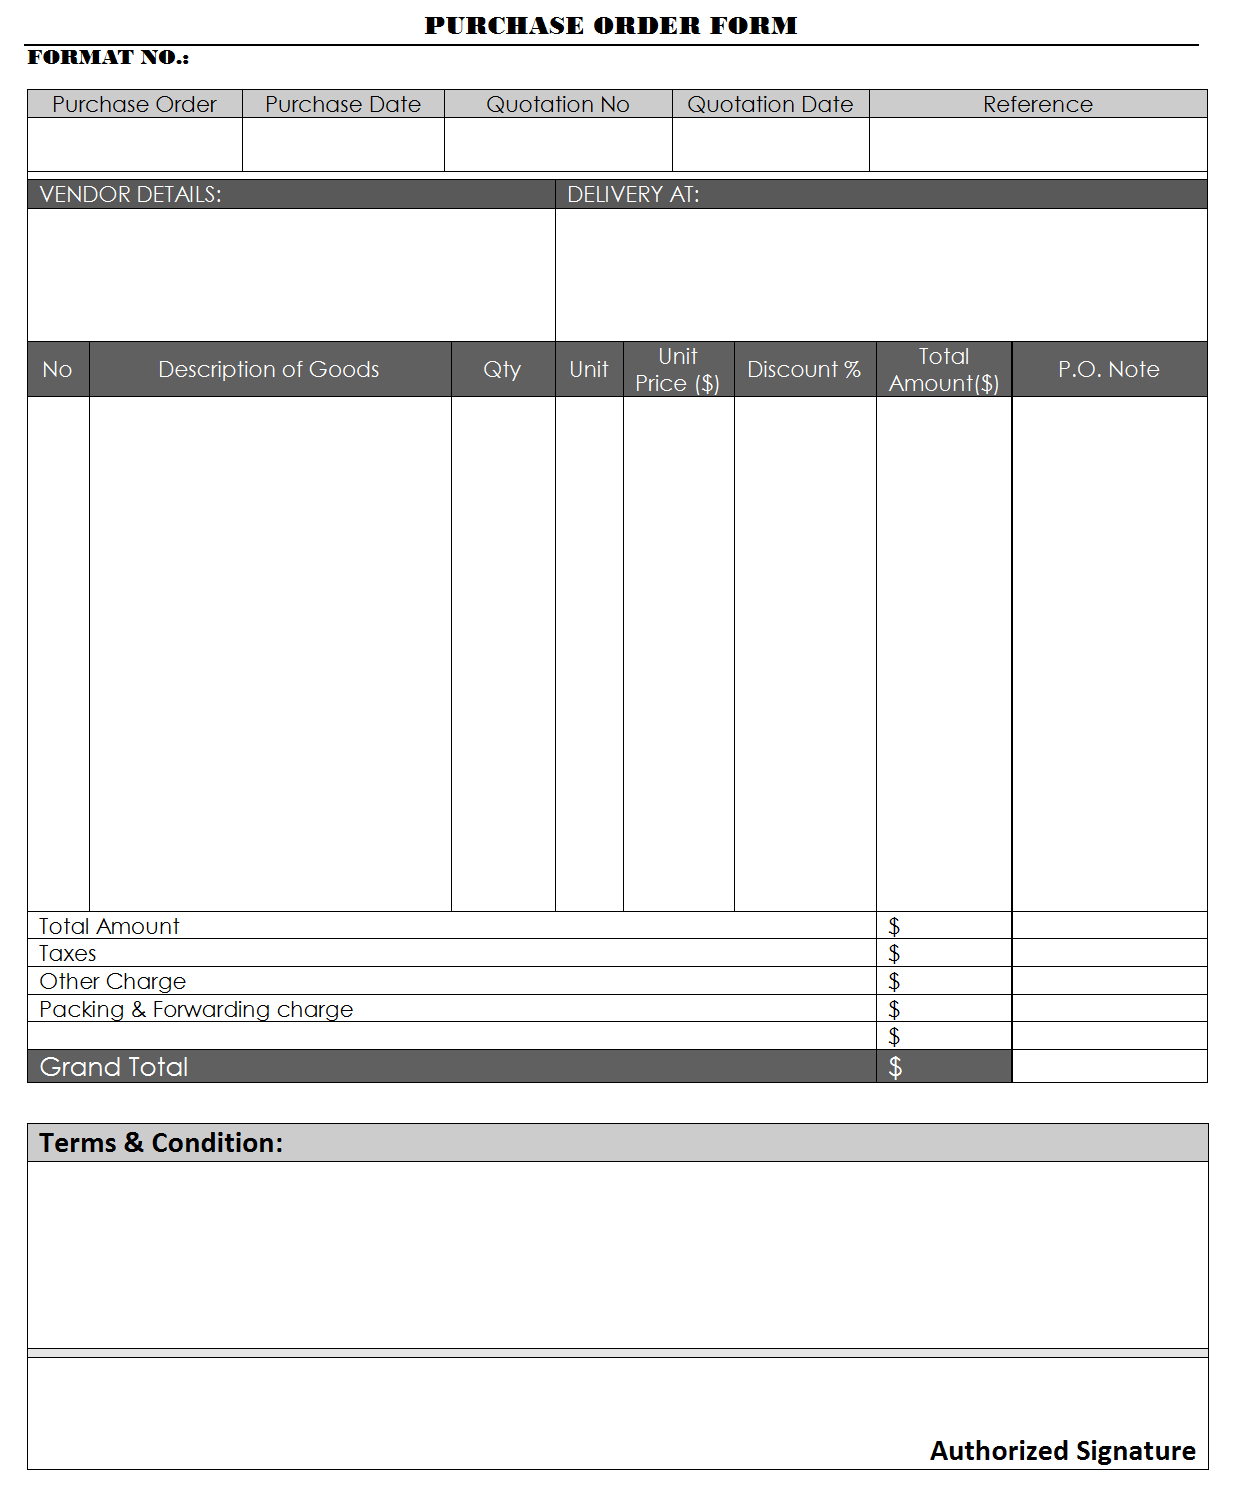 Purchase Order Form Purchase Order Form Purchase Order Form Local Purchase  Order Template Local Purchase Order Template  Local Purchase Order Form